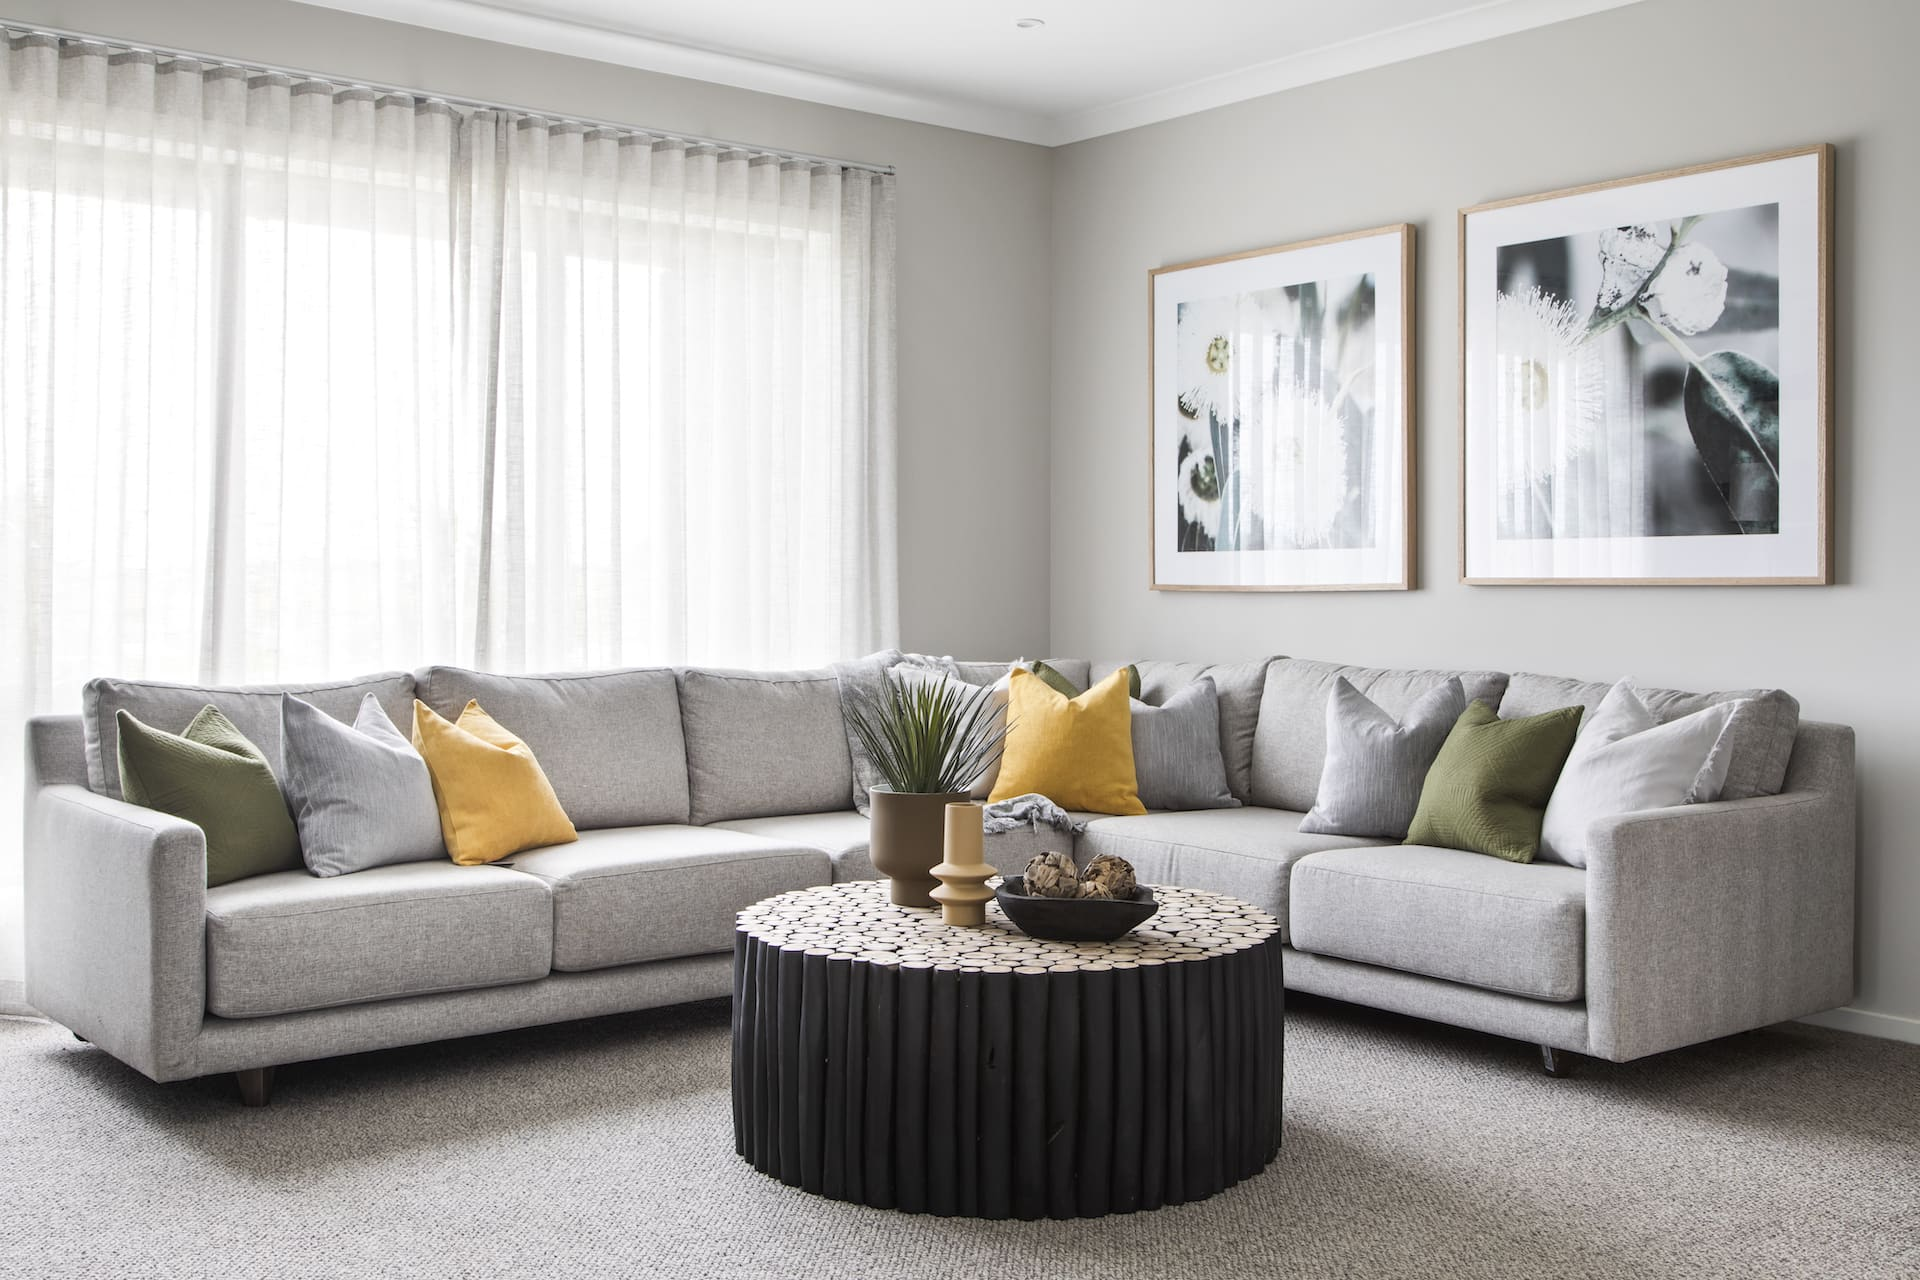 grey sectional sofa with round black timber table and green and yellow cushions